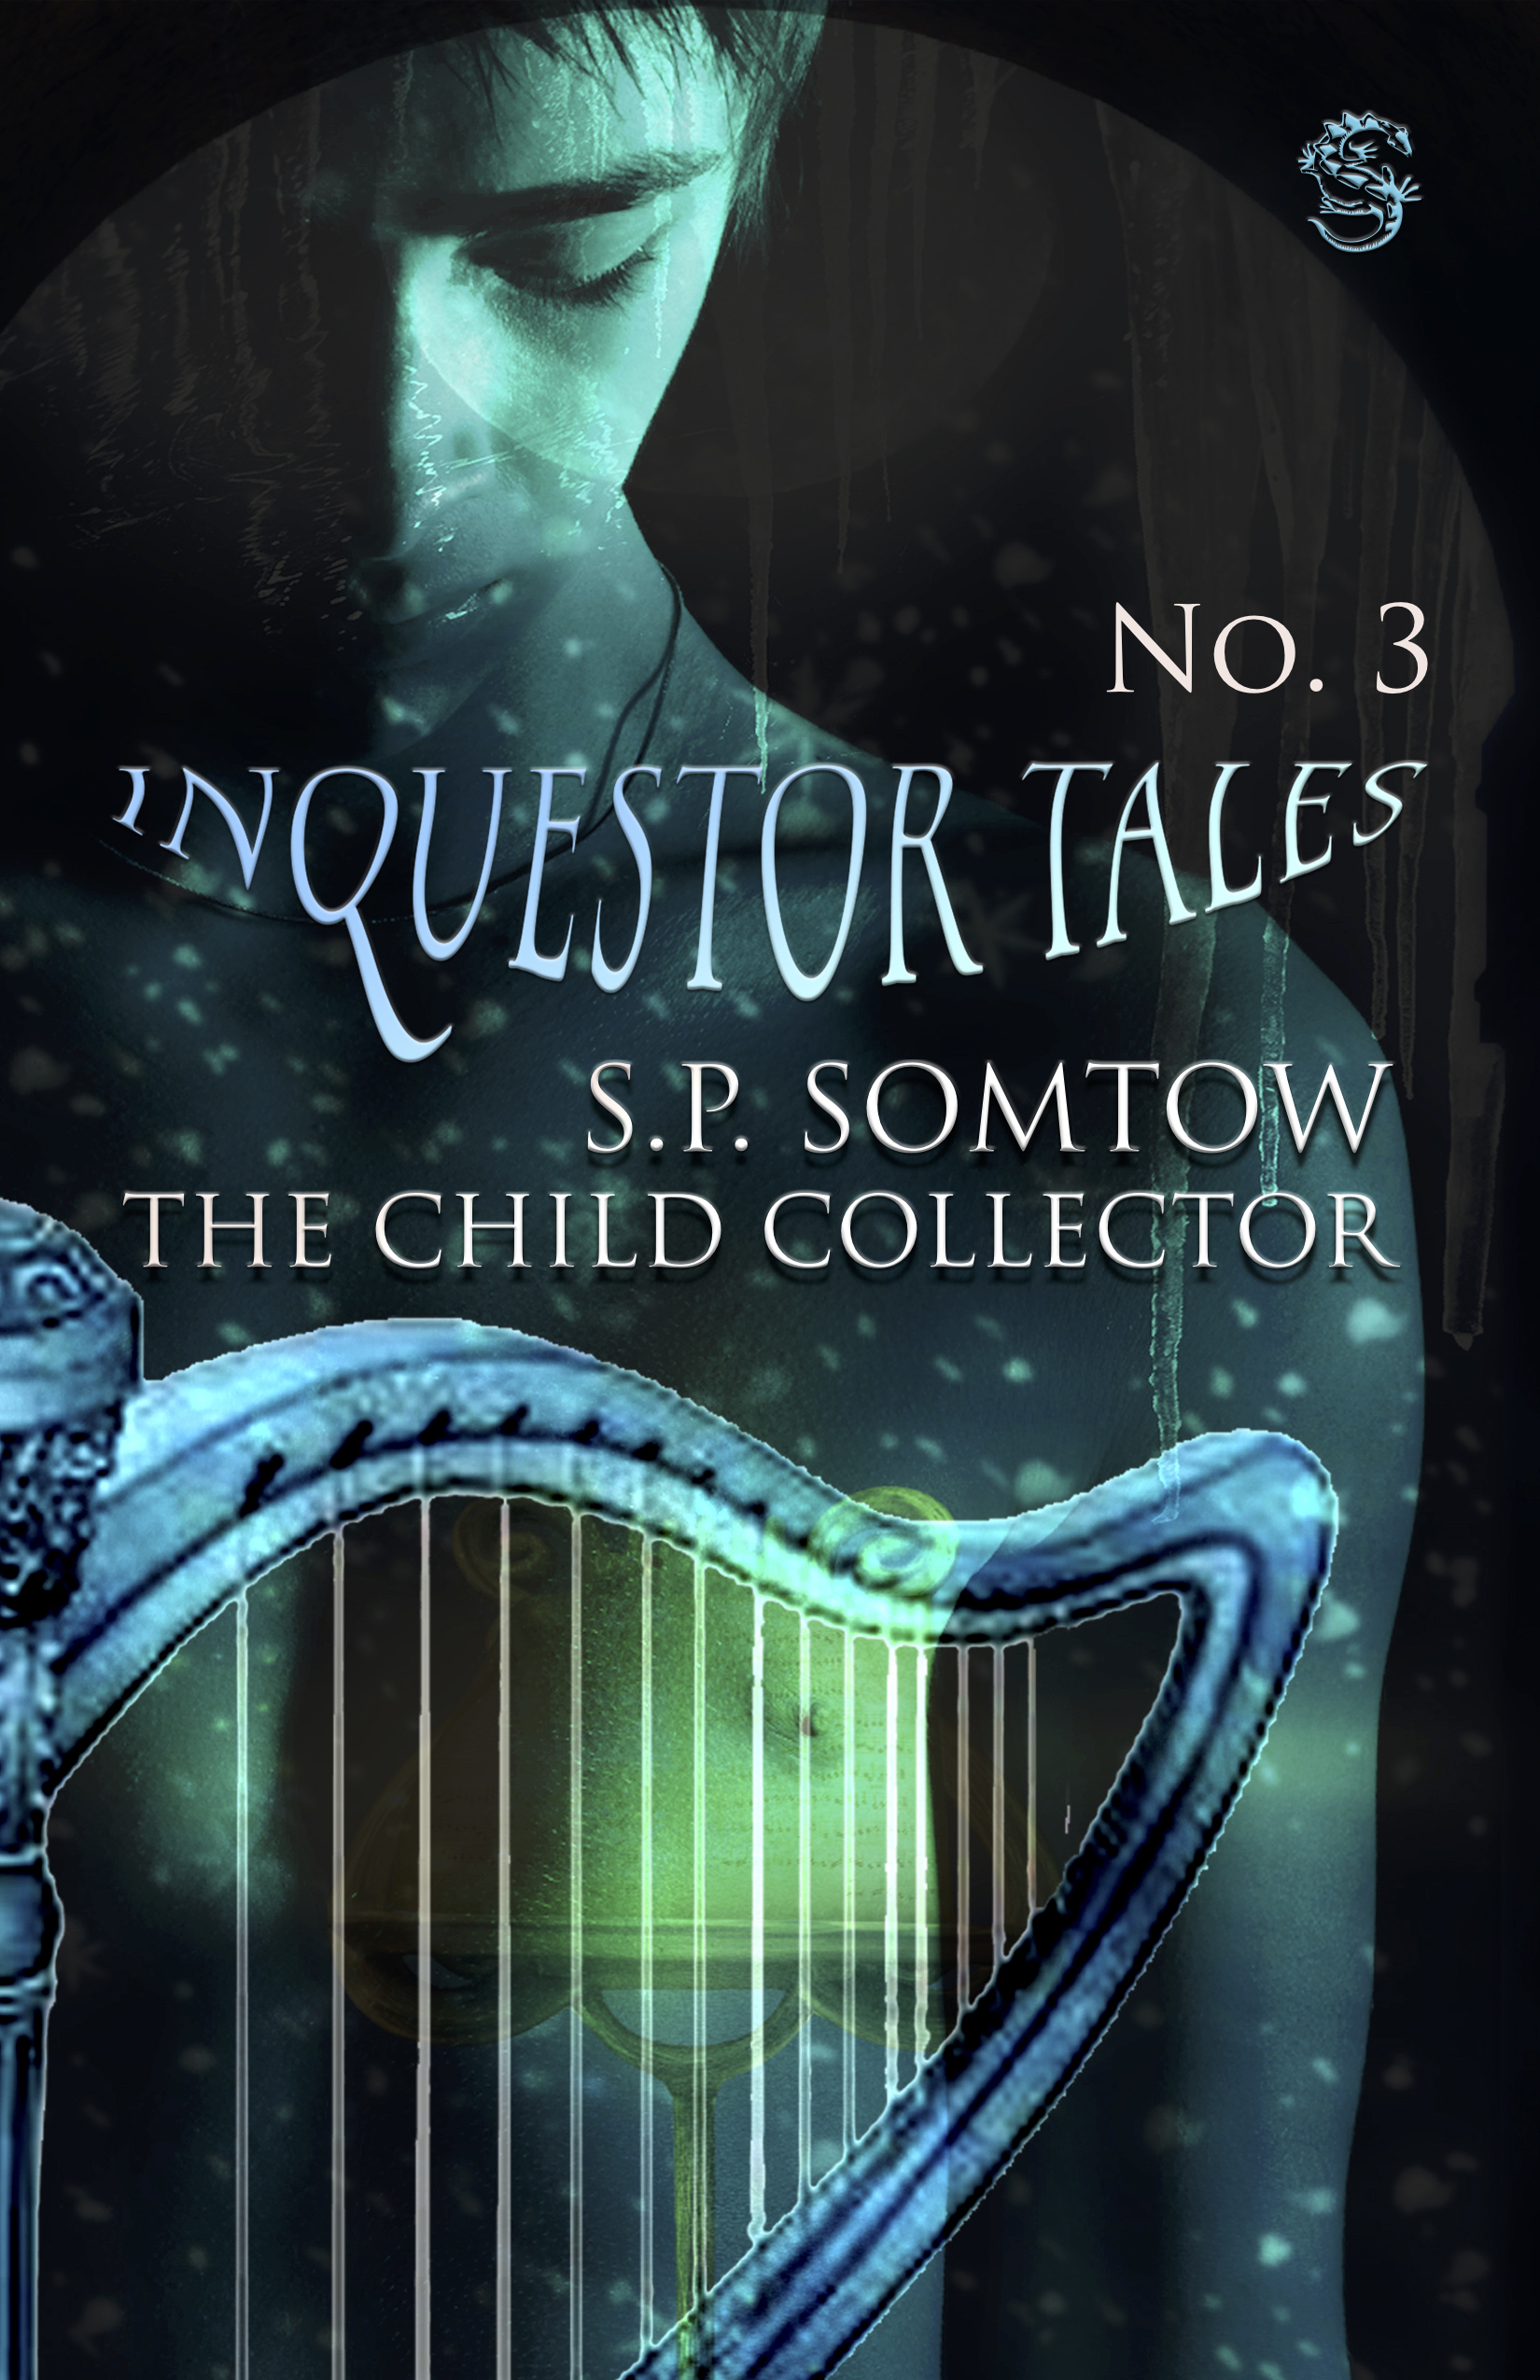 Inquestor Tales Three - will soon be available from Amazon in both paperback and Kindle versions!